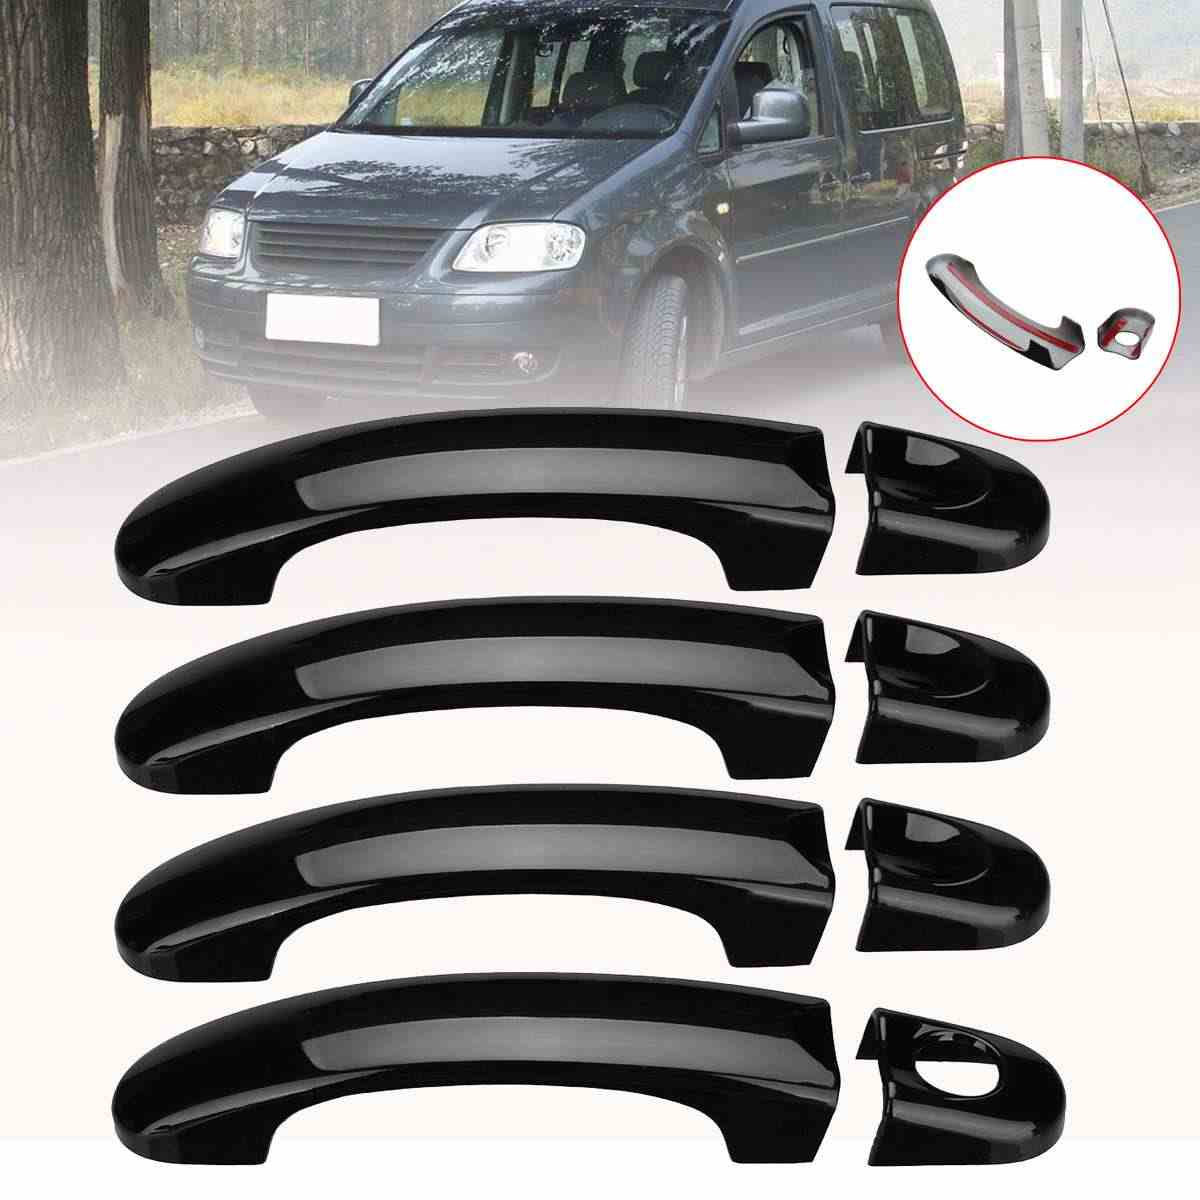 1 Set Car Door Handle Covers Trim For VW Transporter T5 T6 2003-2009 Car Exterior Door Handles ABS Gloss Black/Carbon Black